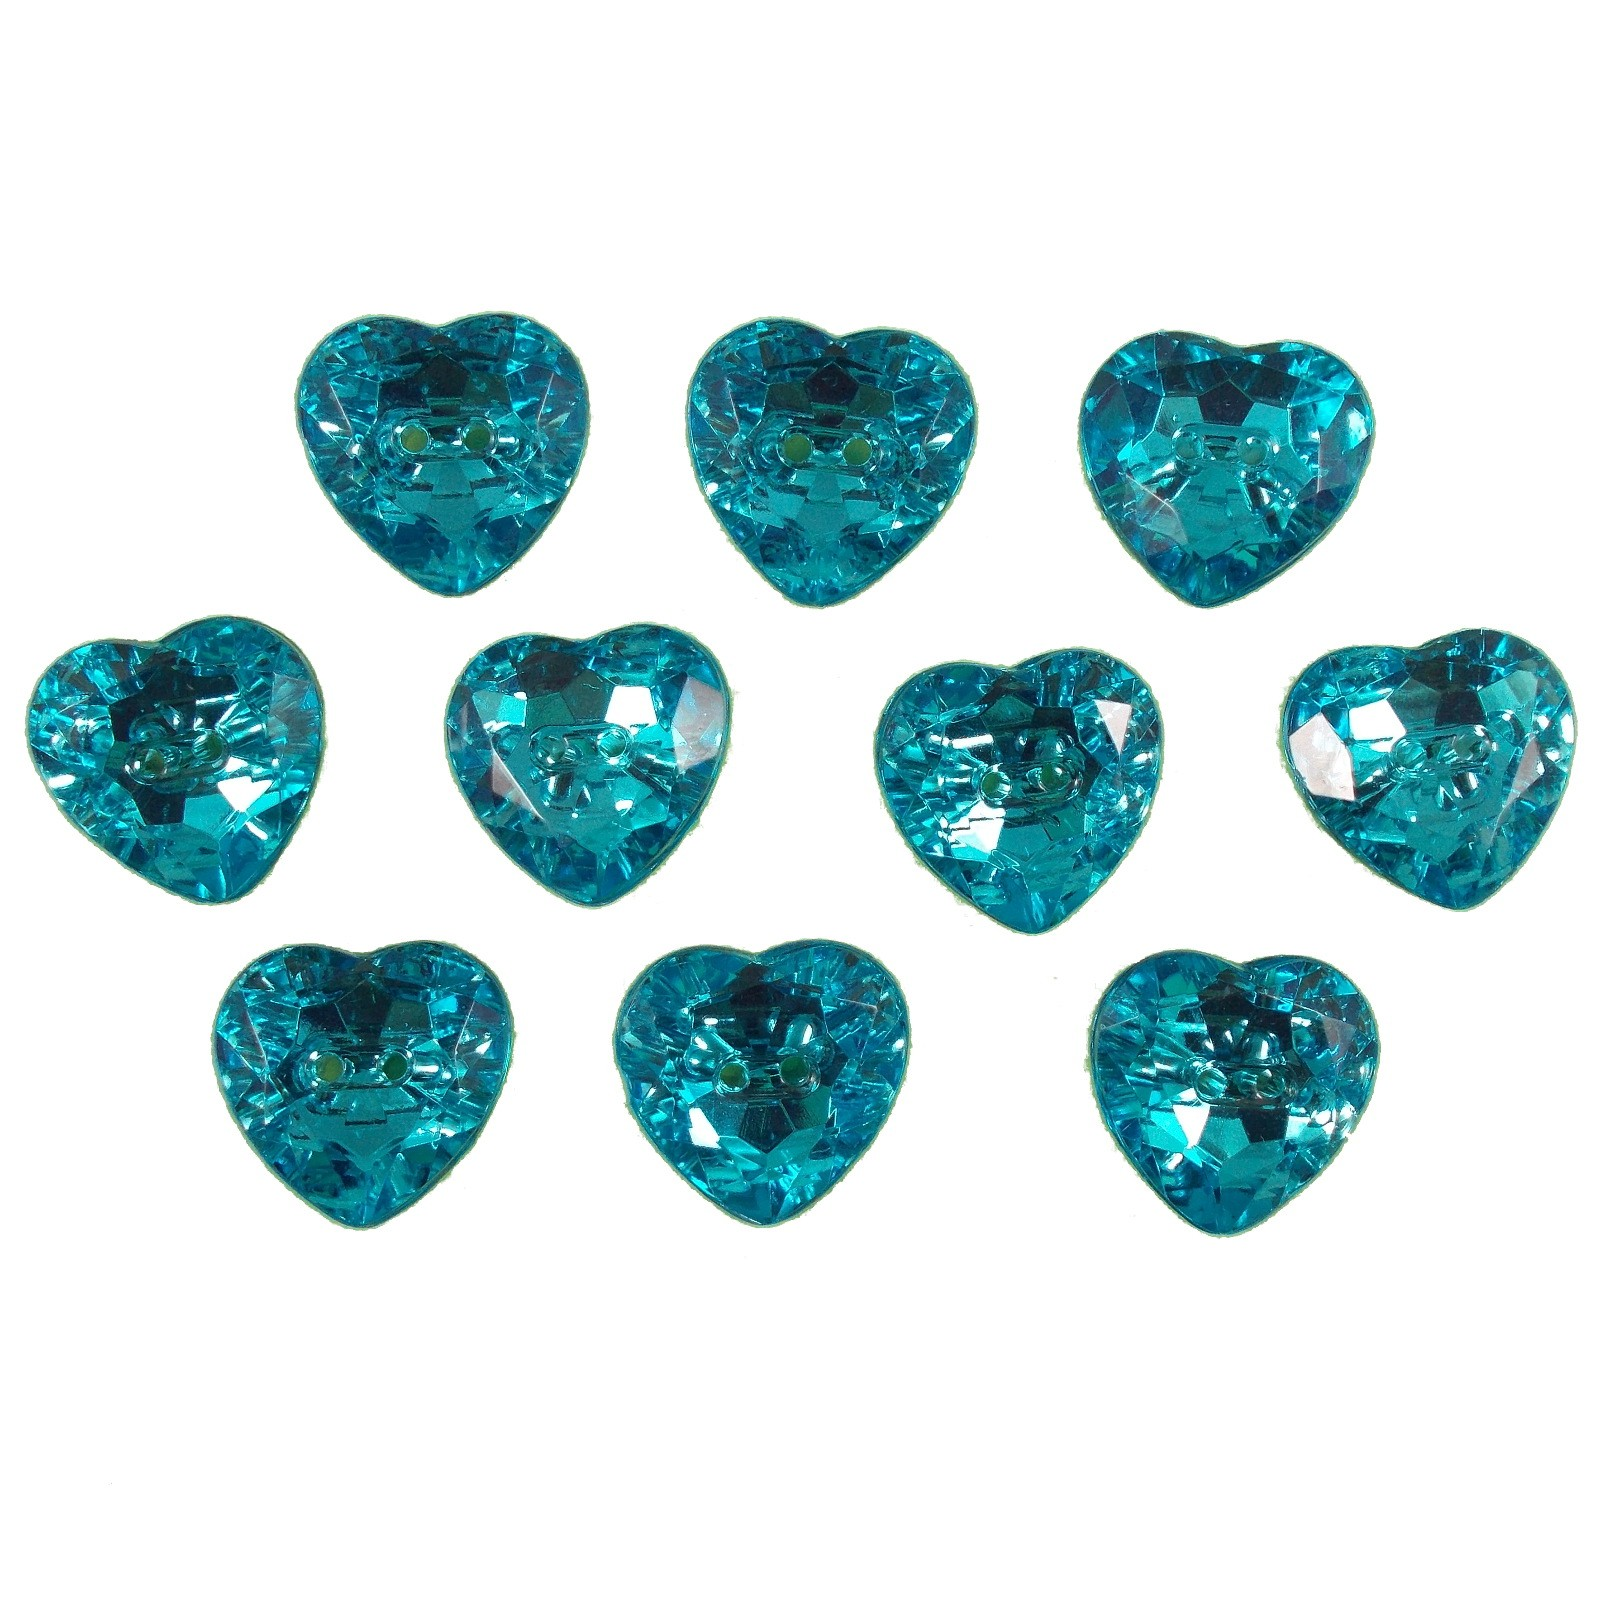 Acrylic Crystal Effect Heart Shape Buttons 16mm Turquoise Pack of 10